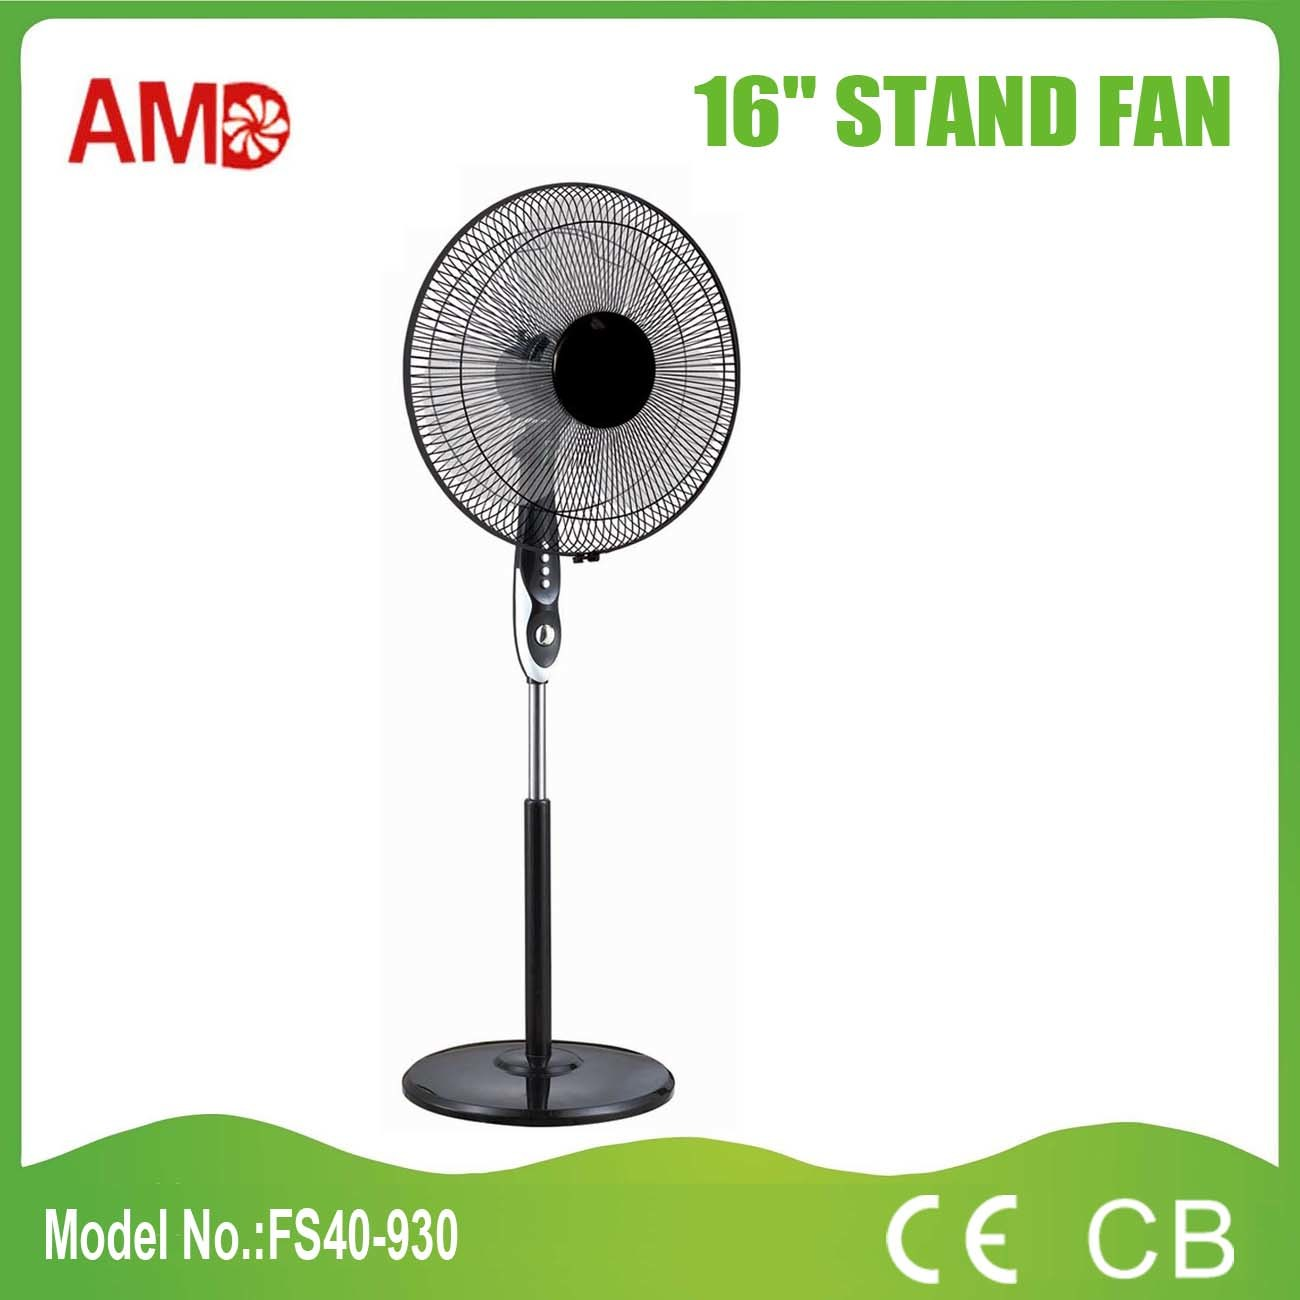 CB Approved Household Electric Stand Fan (FS40-930)